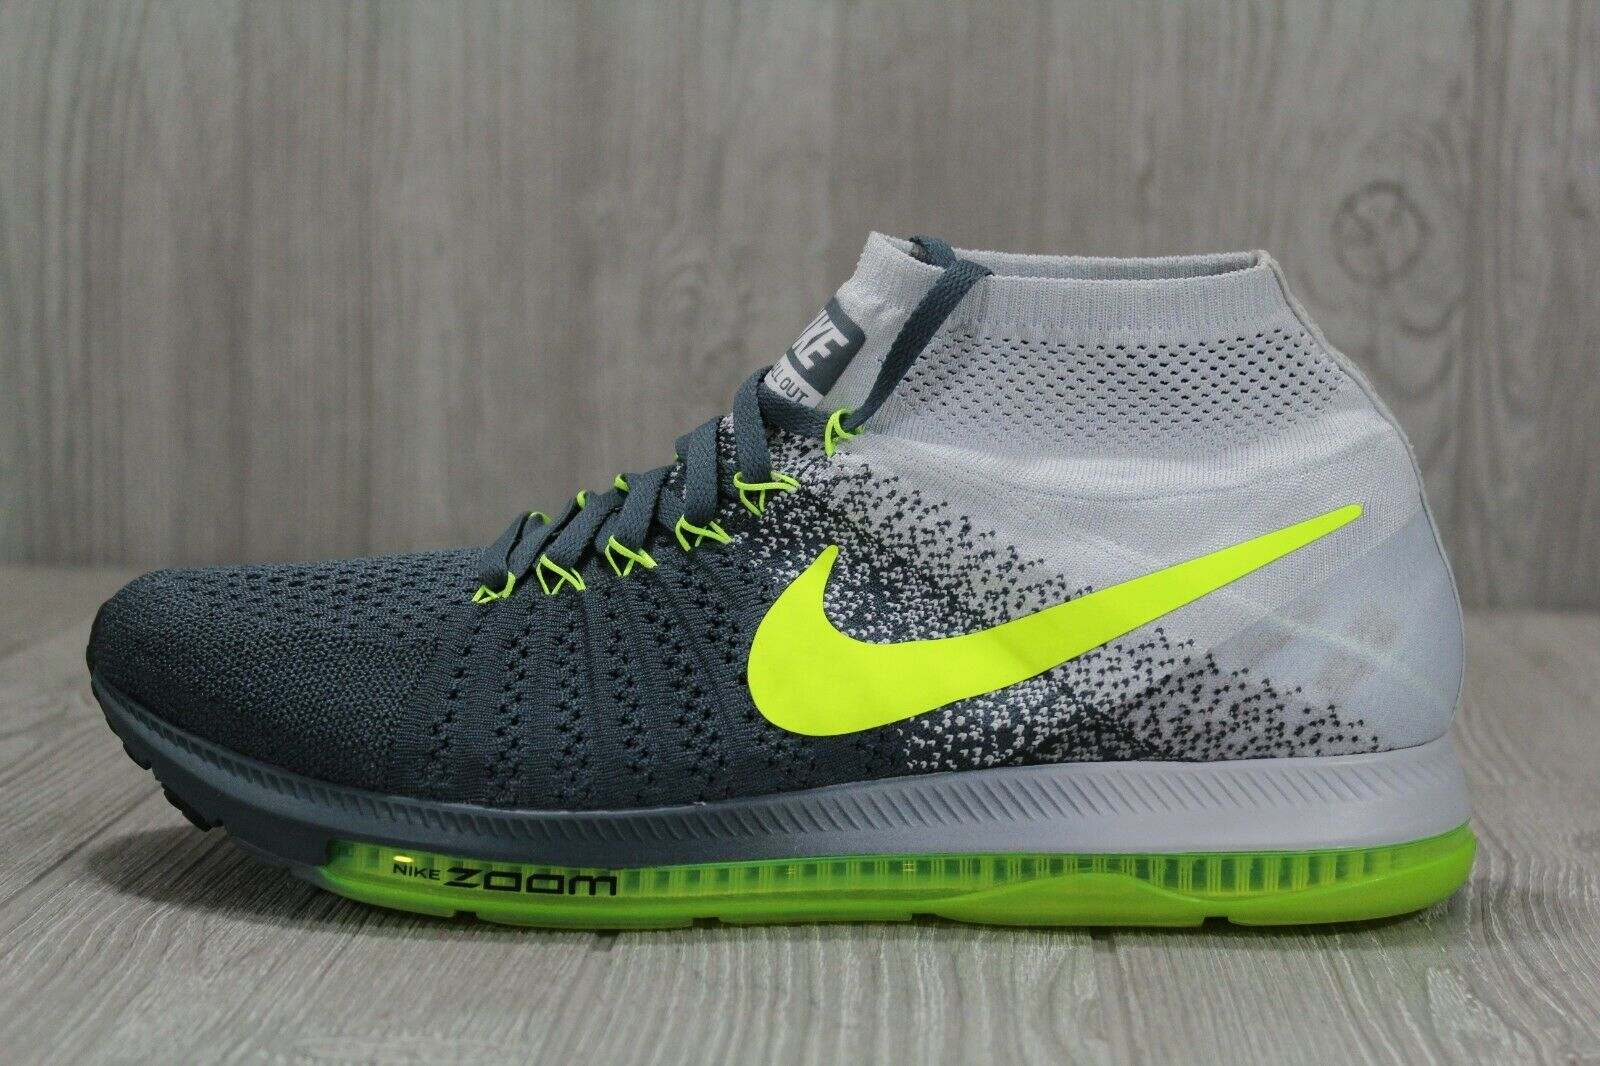 39 Nike Zoom All Out Flyknit Running bluee Fox Black Volt shoes 11.5 844134-407